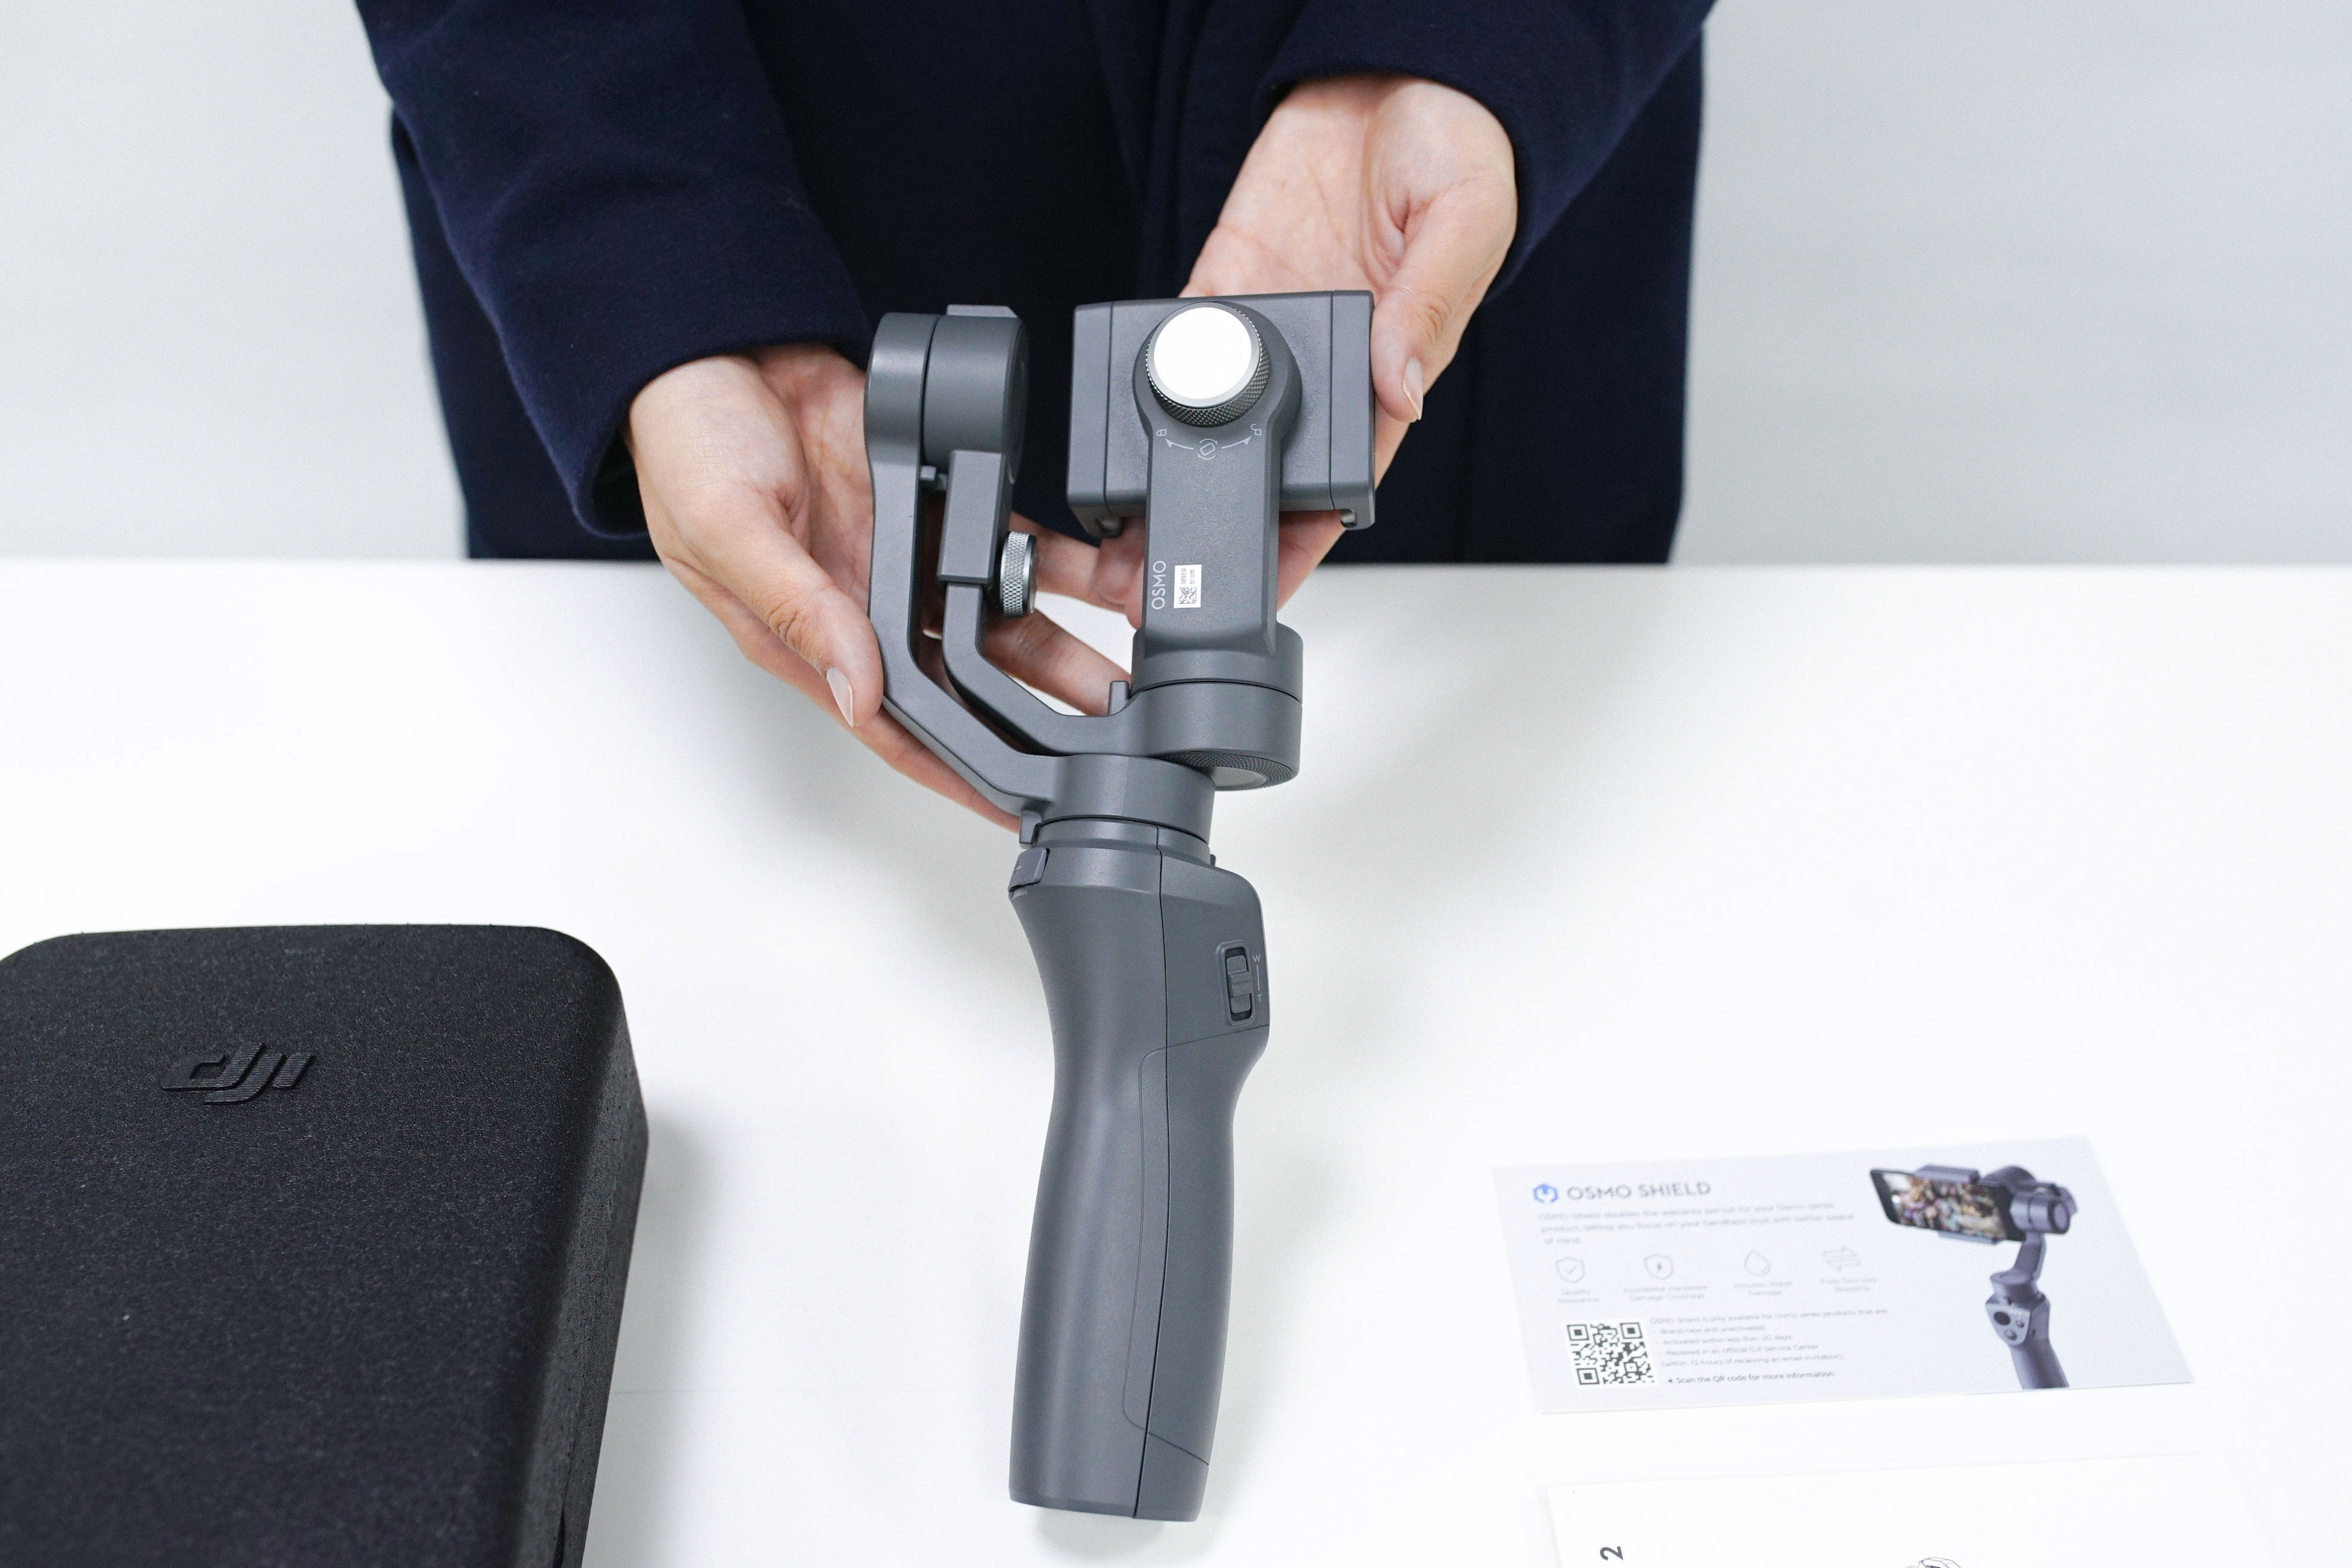 Osmo Mobile 2: Unboxing and What's New - DJI Guides